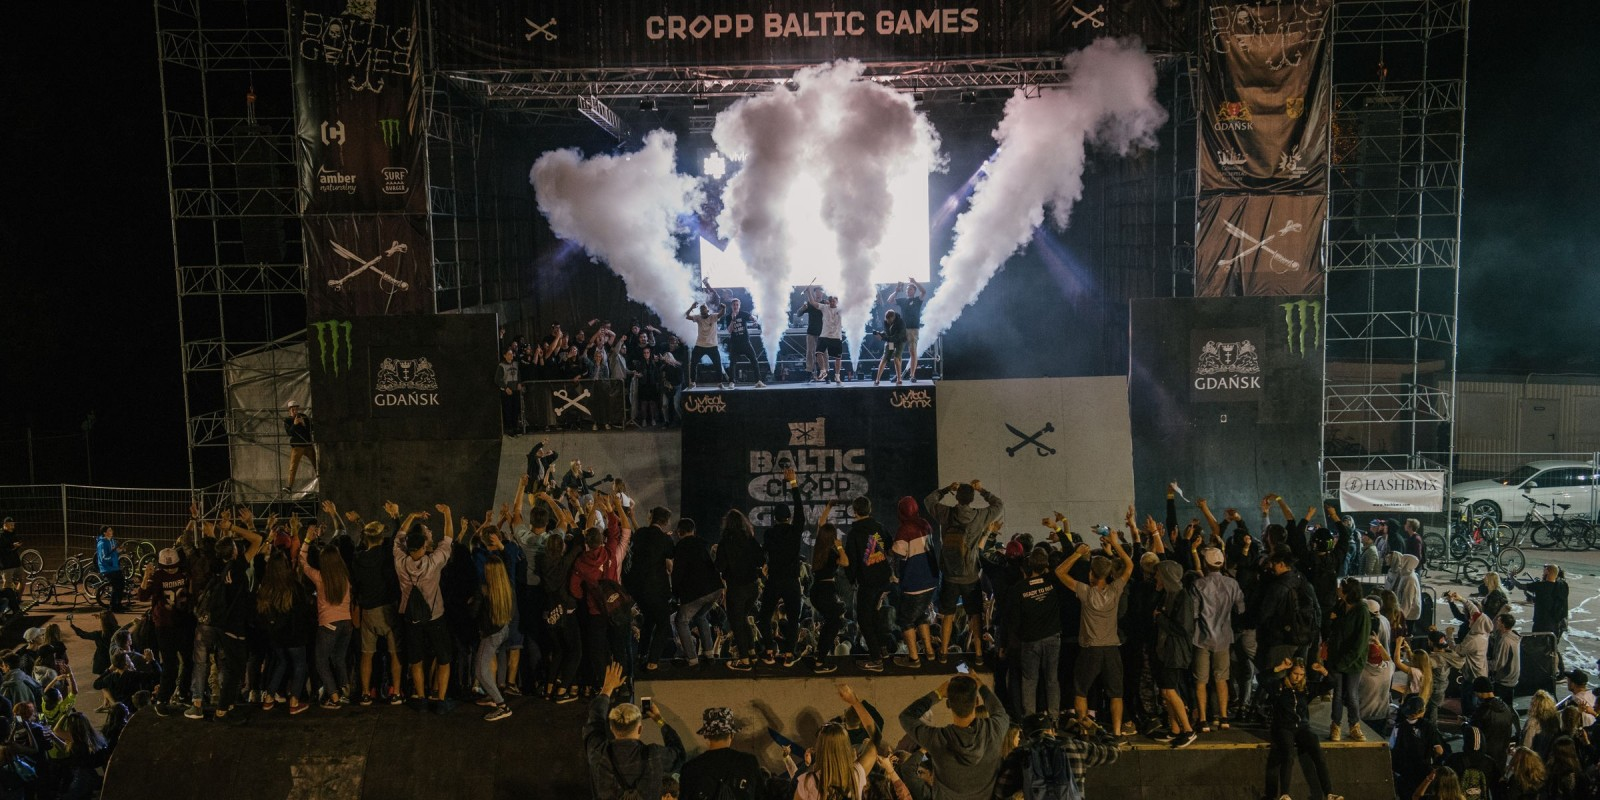 Baltic Games 2017 extreme sports festival - final celebrations